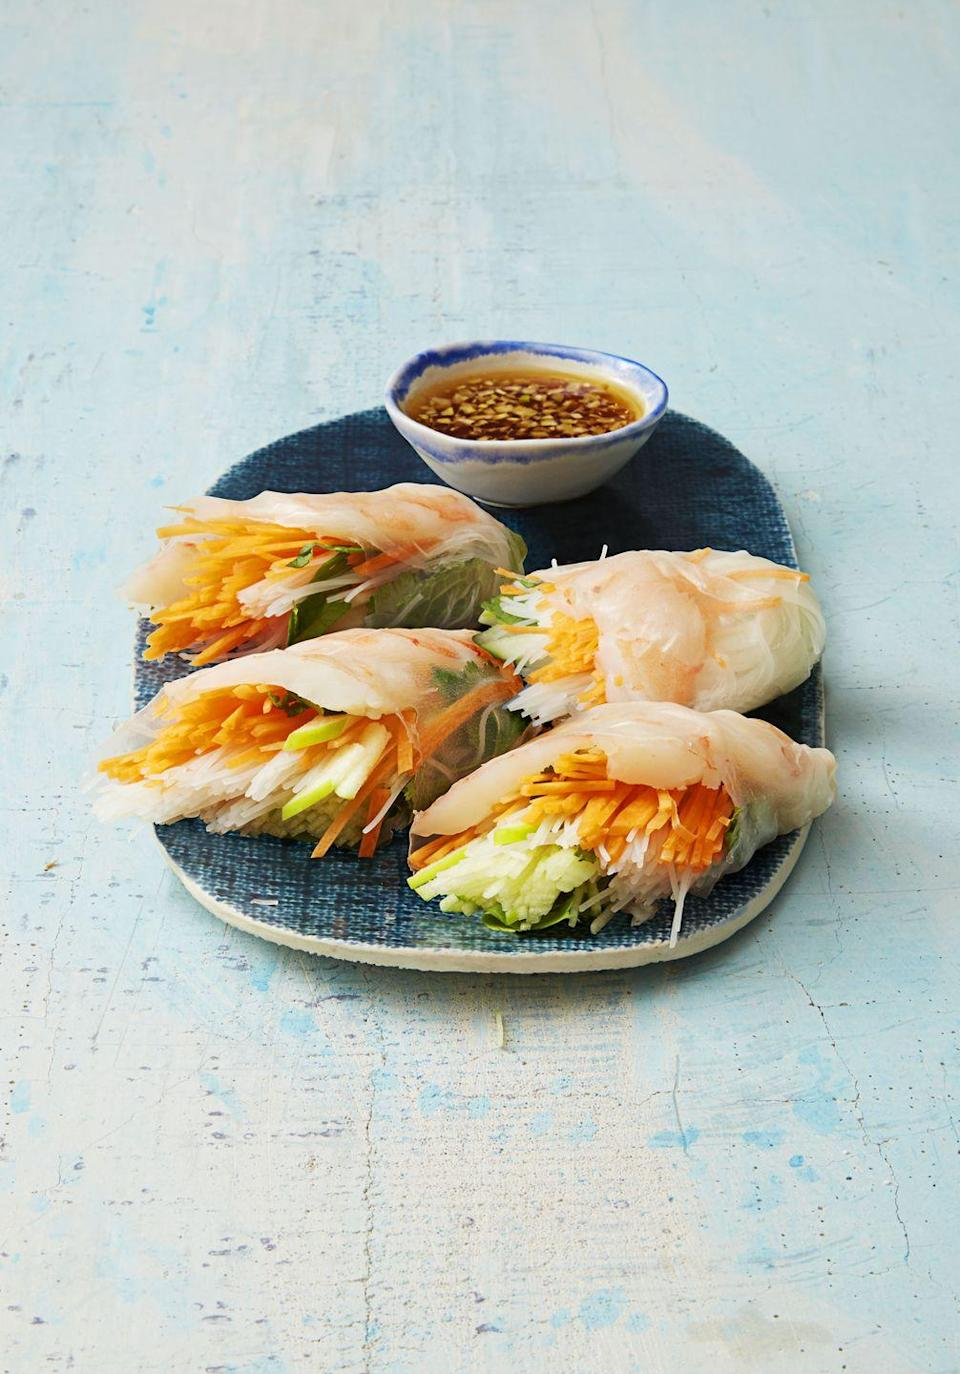 """<p>100x better than anything you would find in the cafeteria. <em>Trust. </em></p><p><a href=""""https://www.goodhousekeeping.com/food-recipes/a38851/vietnamese-shrimp-and-vegetable-rolls-recipe/"""" rel=""""nofollow noopener"""" target=""""_blank"""" data-ylk=""""slk:Get the recipe for Vietnamese Shrimp and Vegetable Rolls »"""" class=""""link rapid-noclick-resp""""><em>Get the recipe for Vietnamese Shrimp and Vegetable Rolls »</em></a> </p>"""